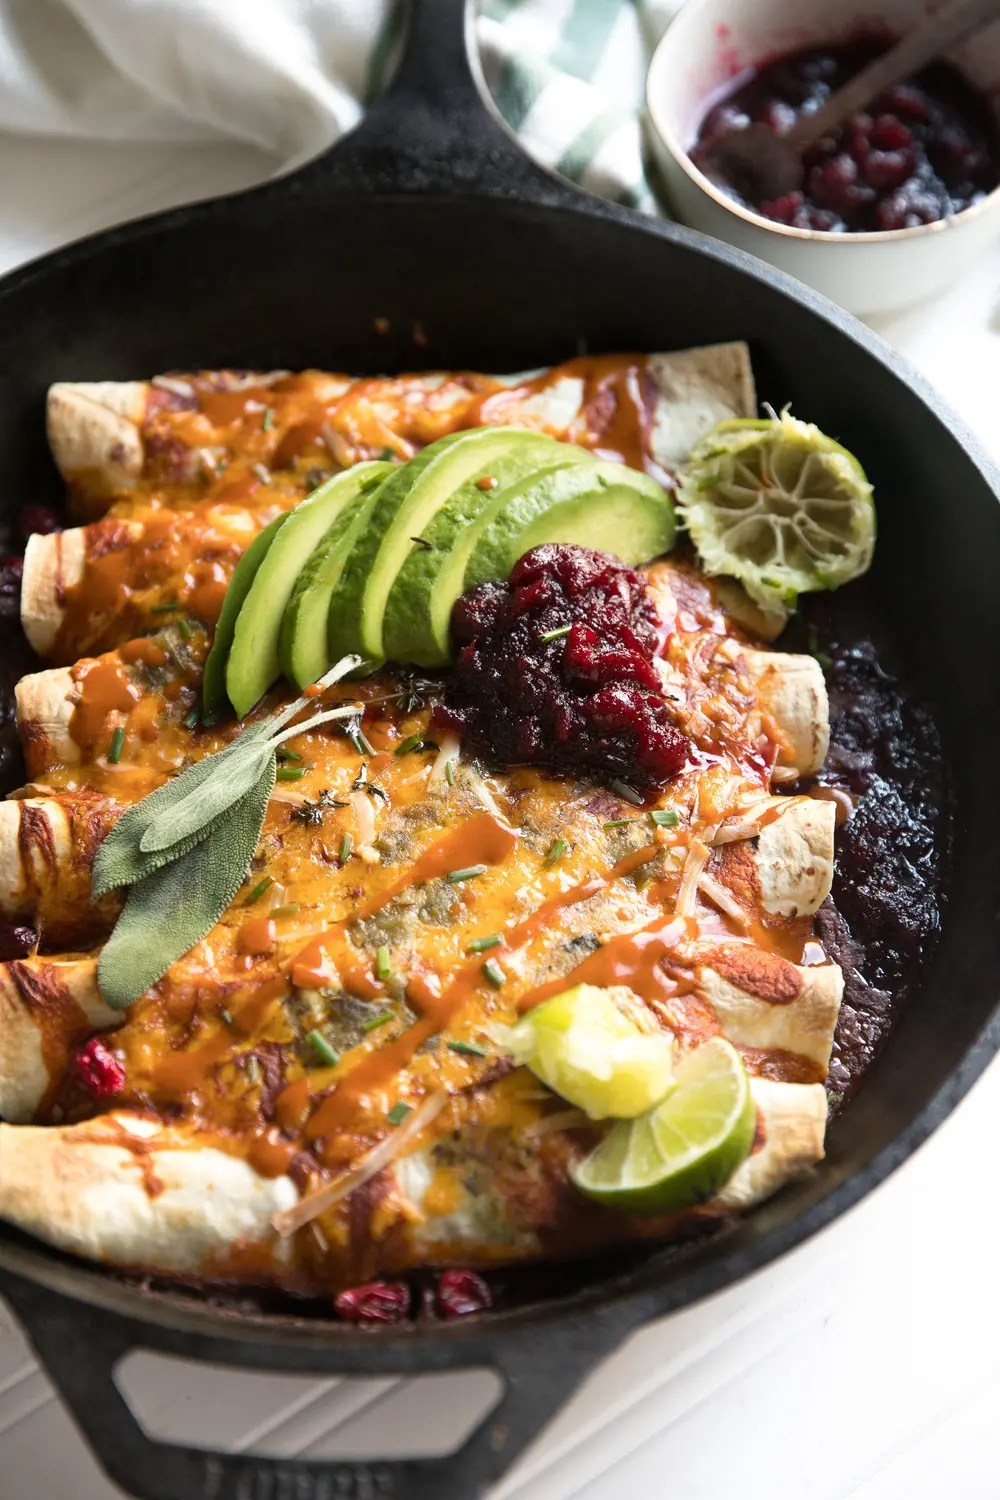 Leftover Thanksgiving Enchiladas filled with turkey, stuffing, leftover vegetable casserole, cheese, and cranberry sauce.